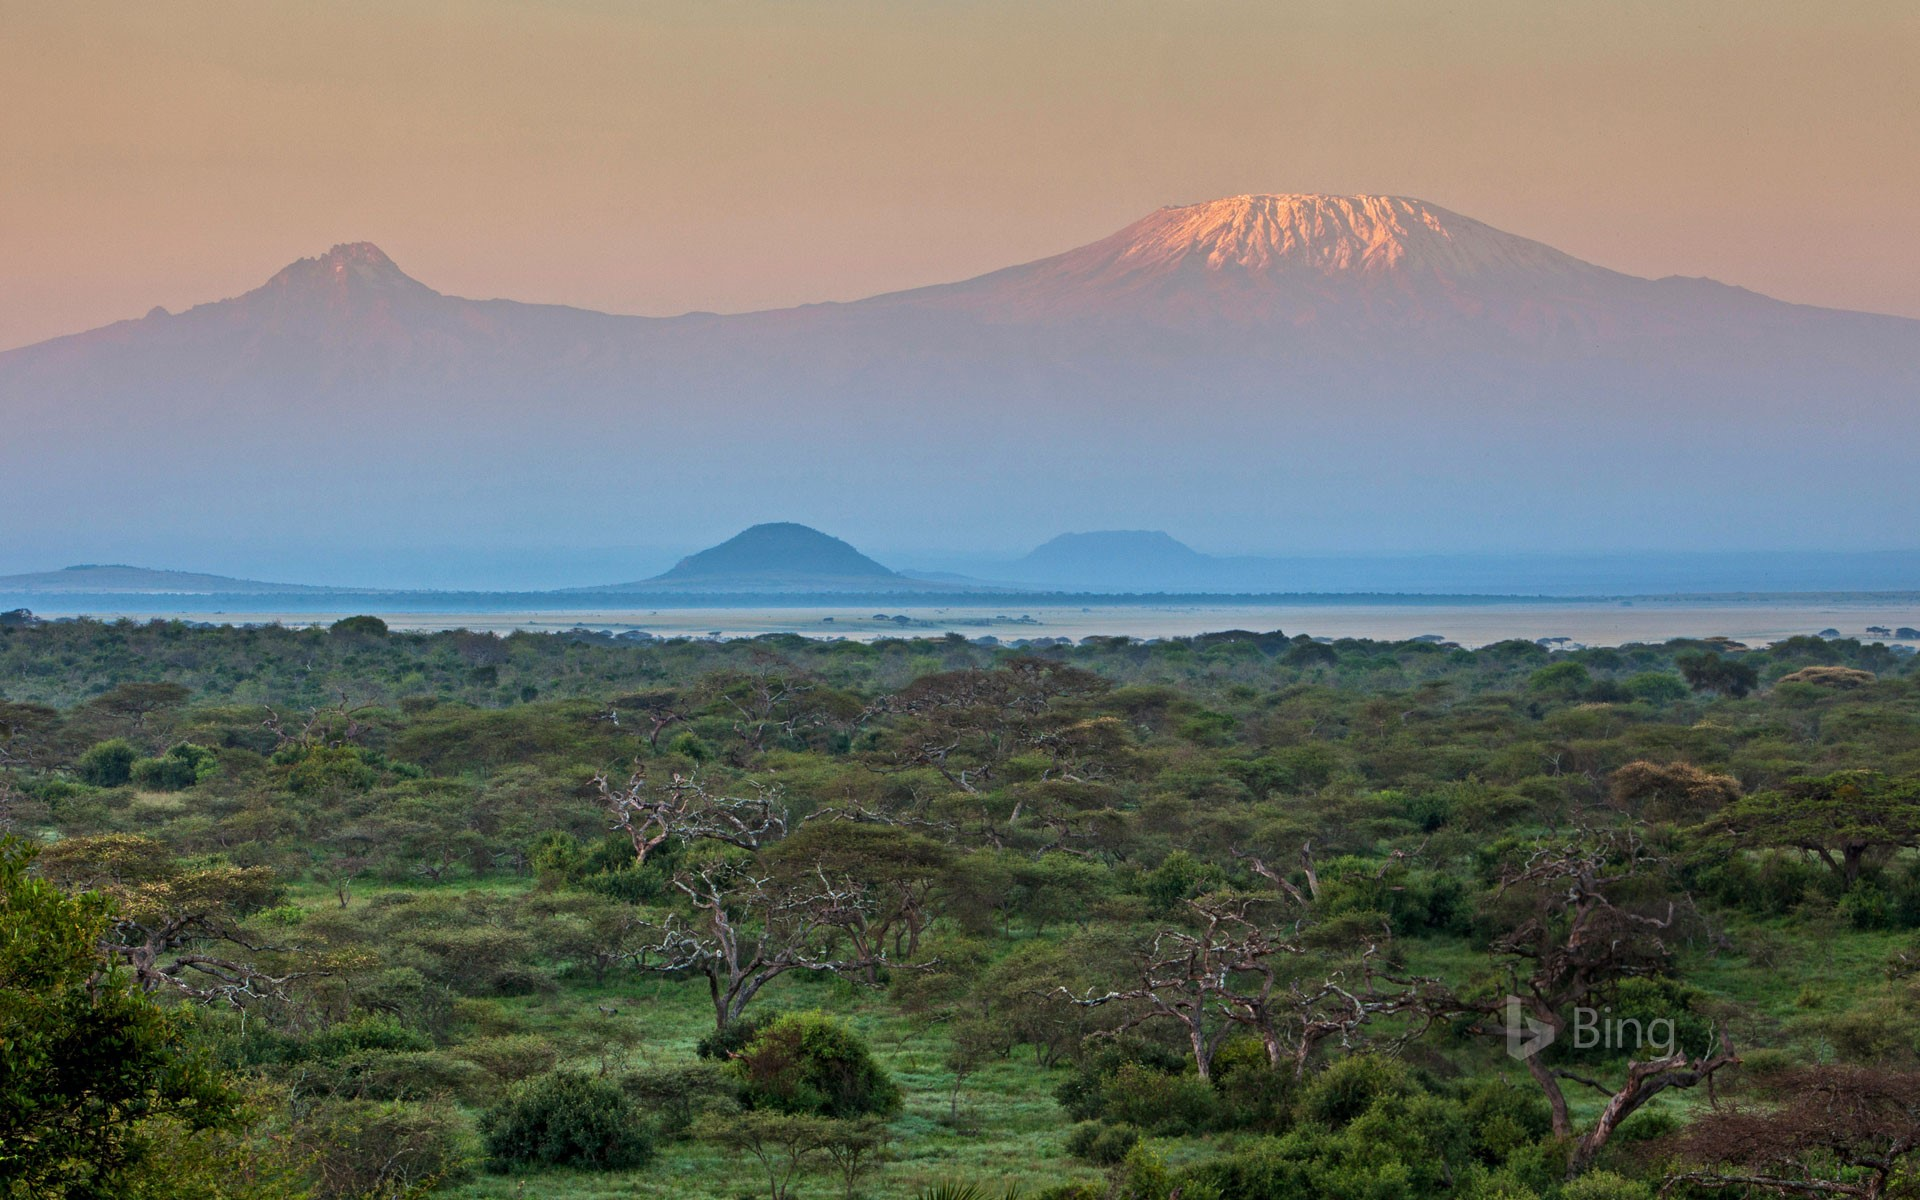 Mount Kilimanjaro seen from Chyulu Hills National Park in Kenya